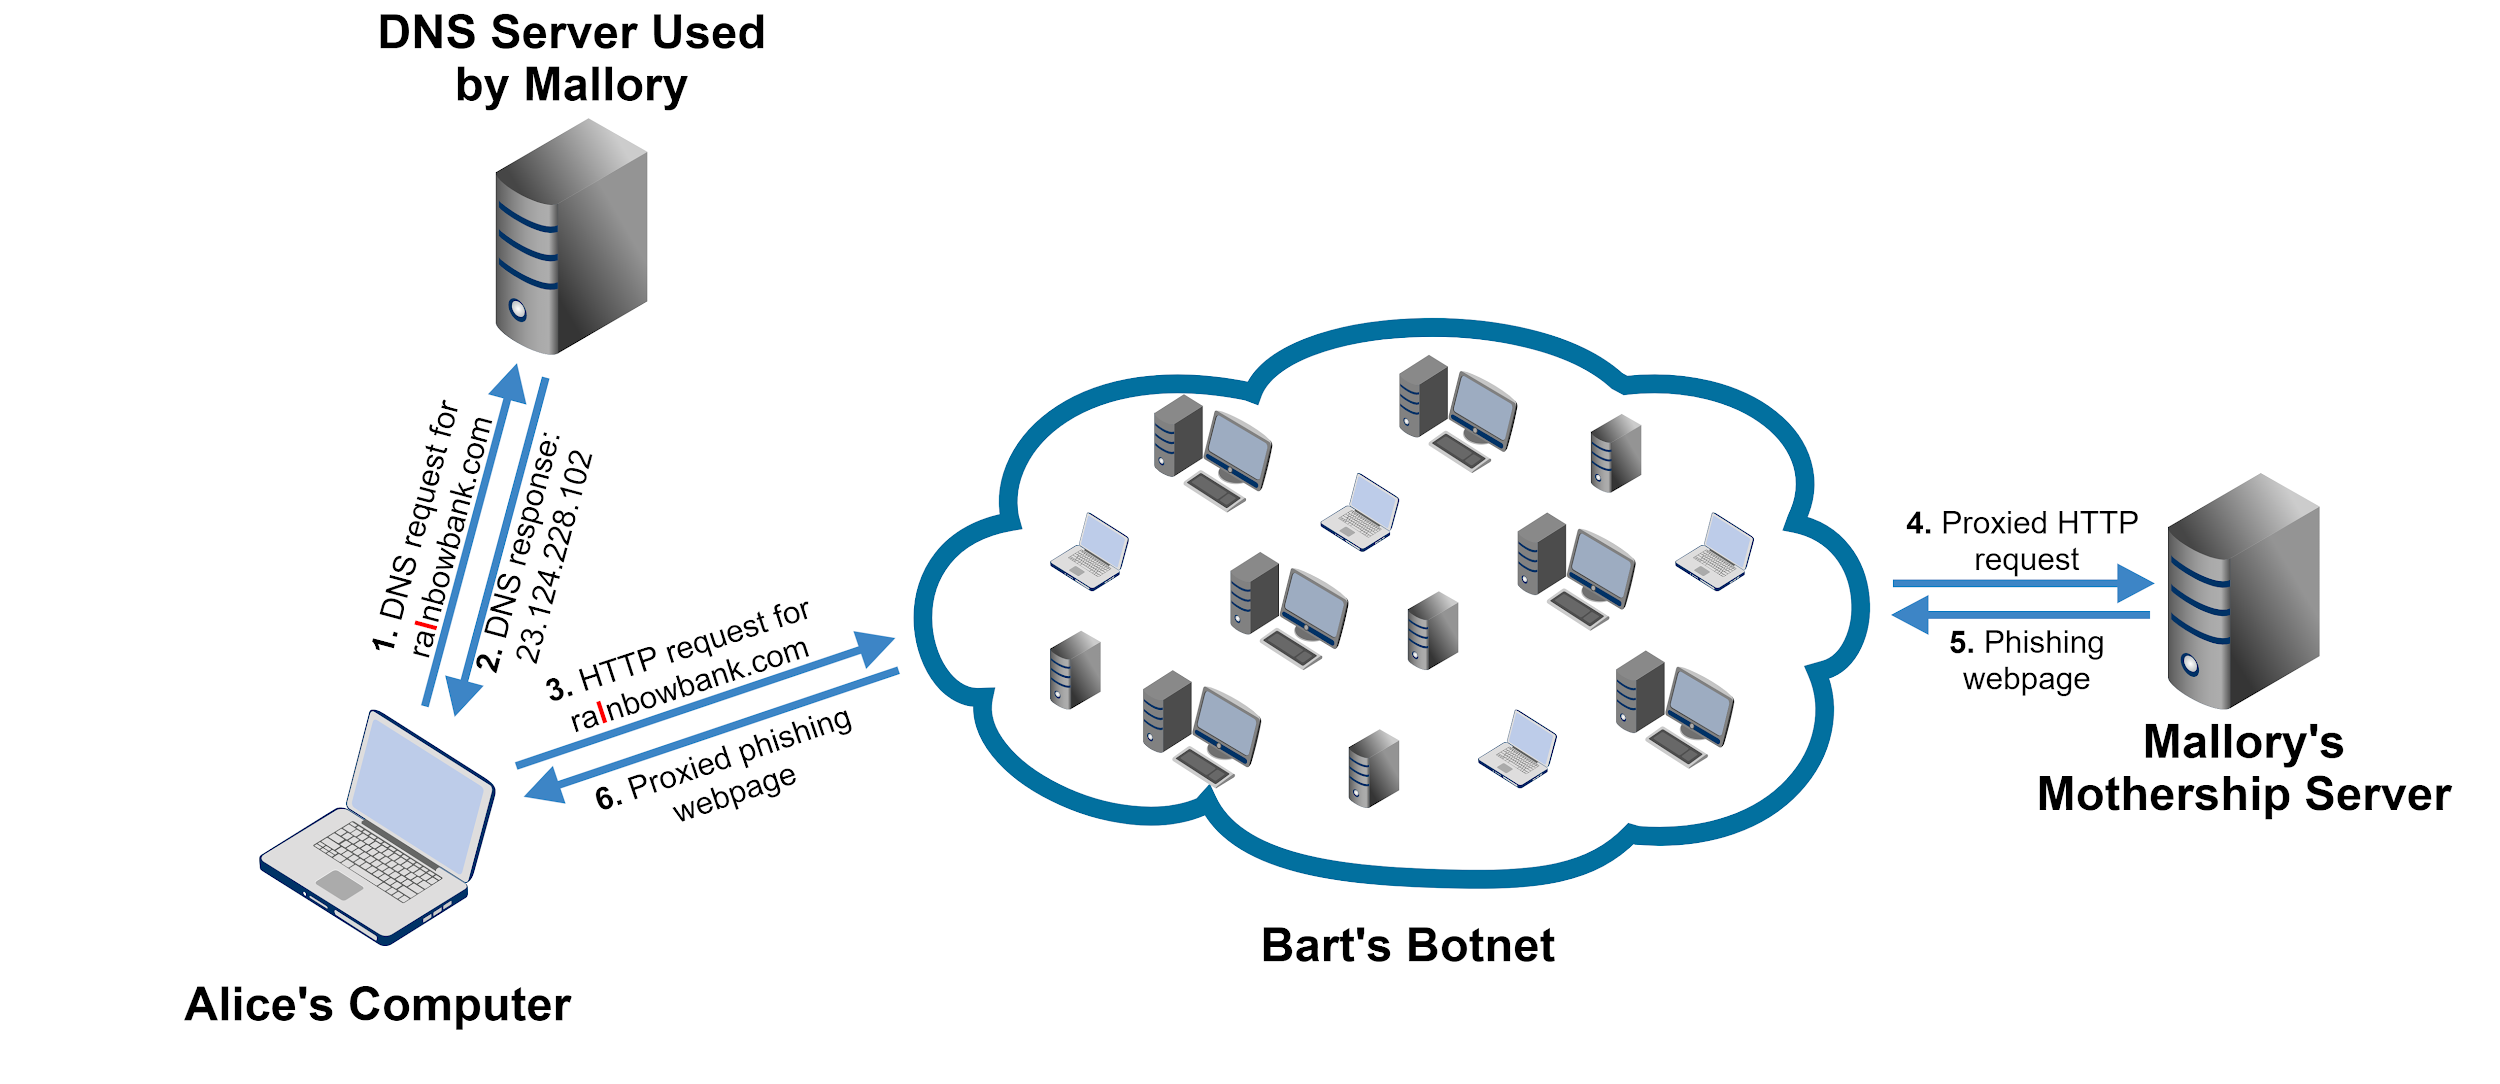 This shows the design of a fast flux architecture. Steps include: 1) DNS request for domain name from a victim computer to an attacker's server; 2) DNS response from attacker's server to victim computer; 3) HTTP request for domain name from victim computer to attacker's botnet; 4) Proxied HTTP request from botnet to attacker's mothership server; 5) Phishing webpage from mothership server to attacker's botnet; 6) Proxied phishing webpage from attacker's botnet to victim computer